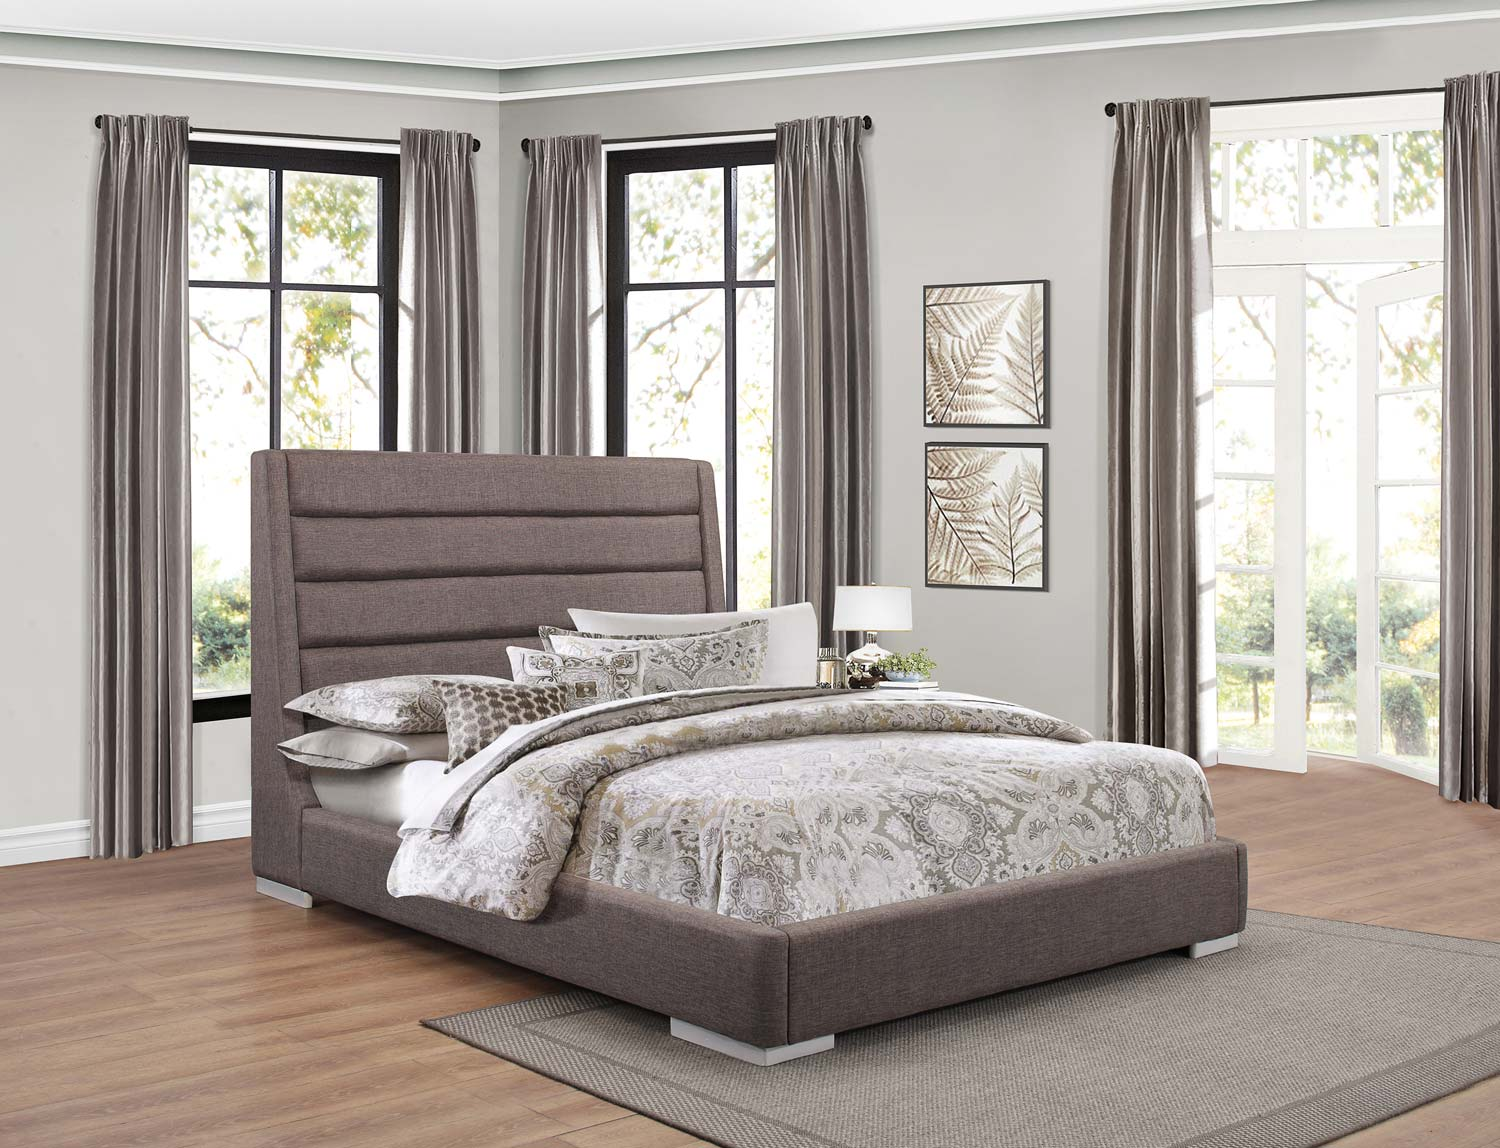 Homelegance Fabriana Upholstered Bed - Grey